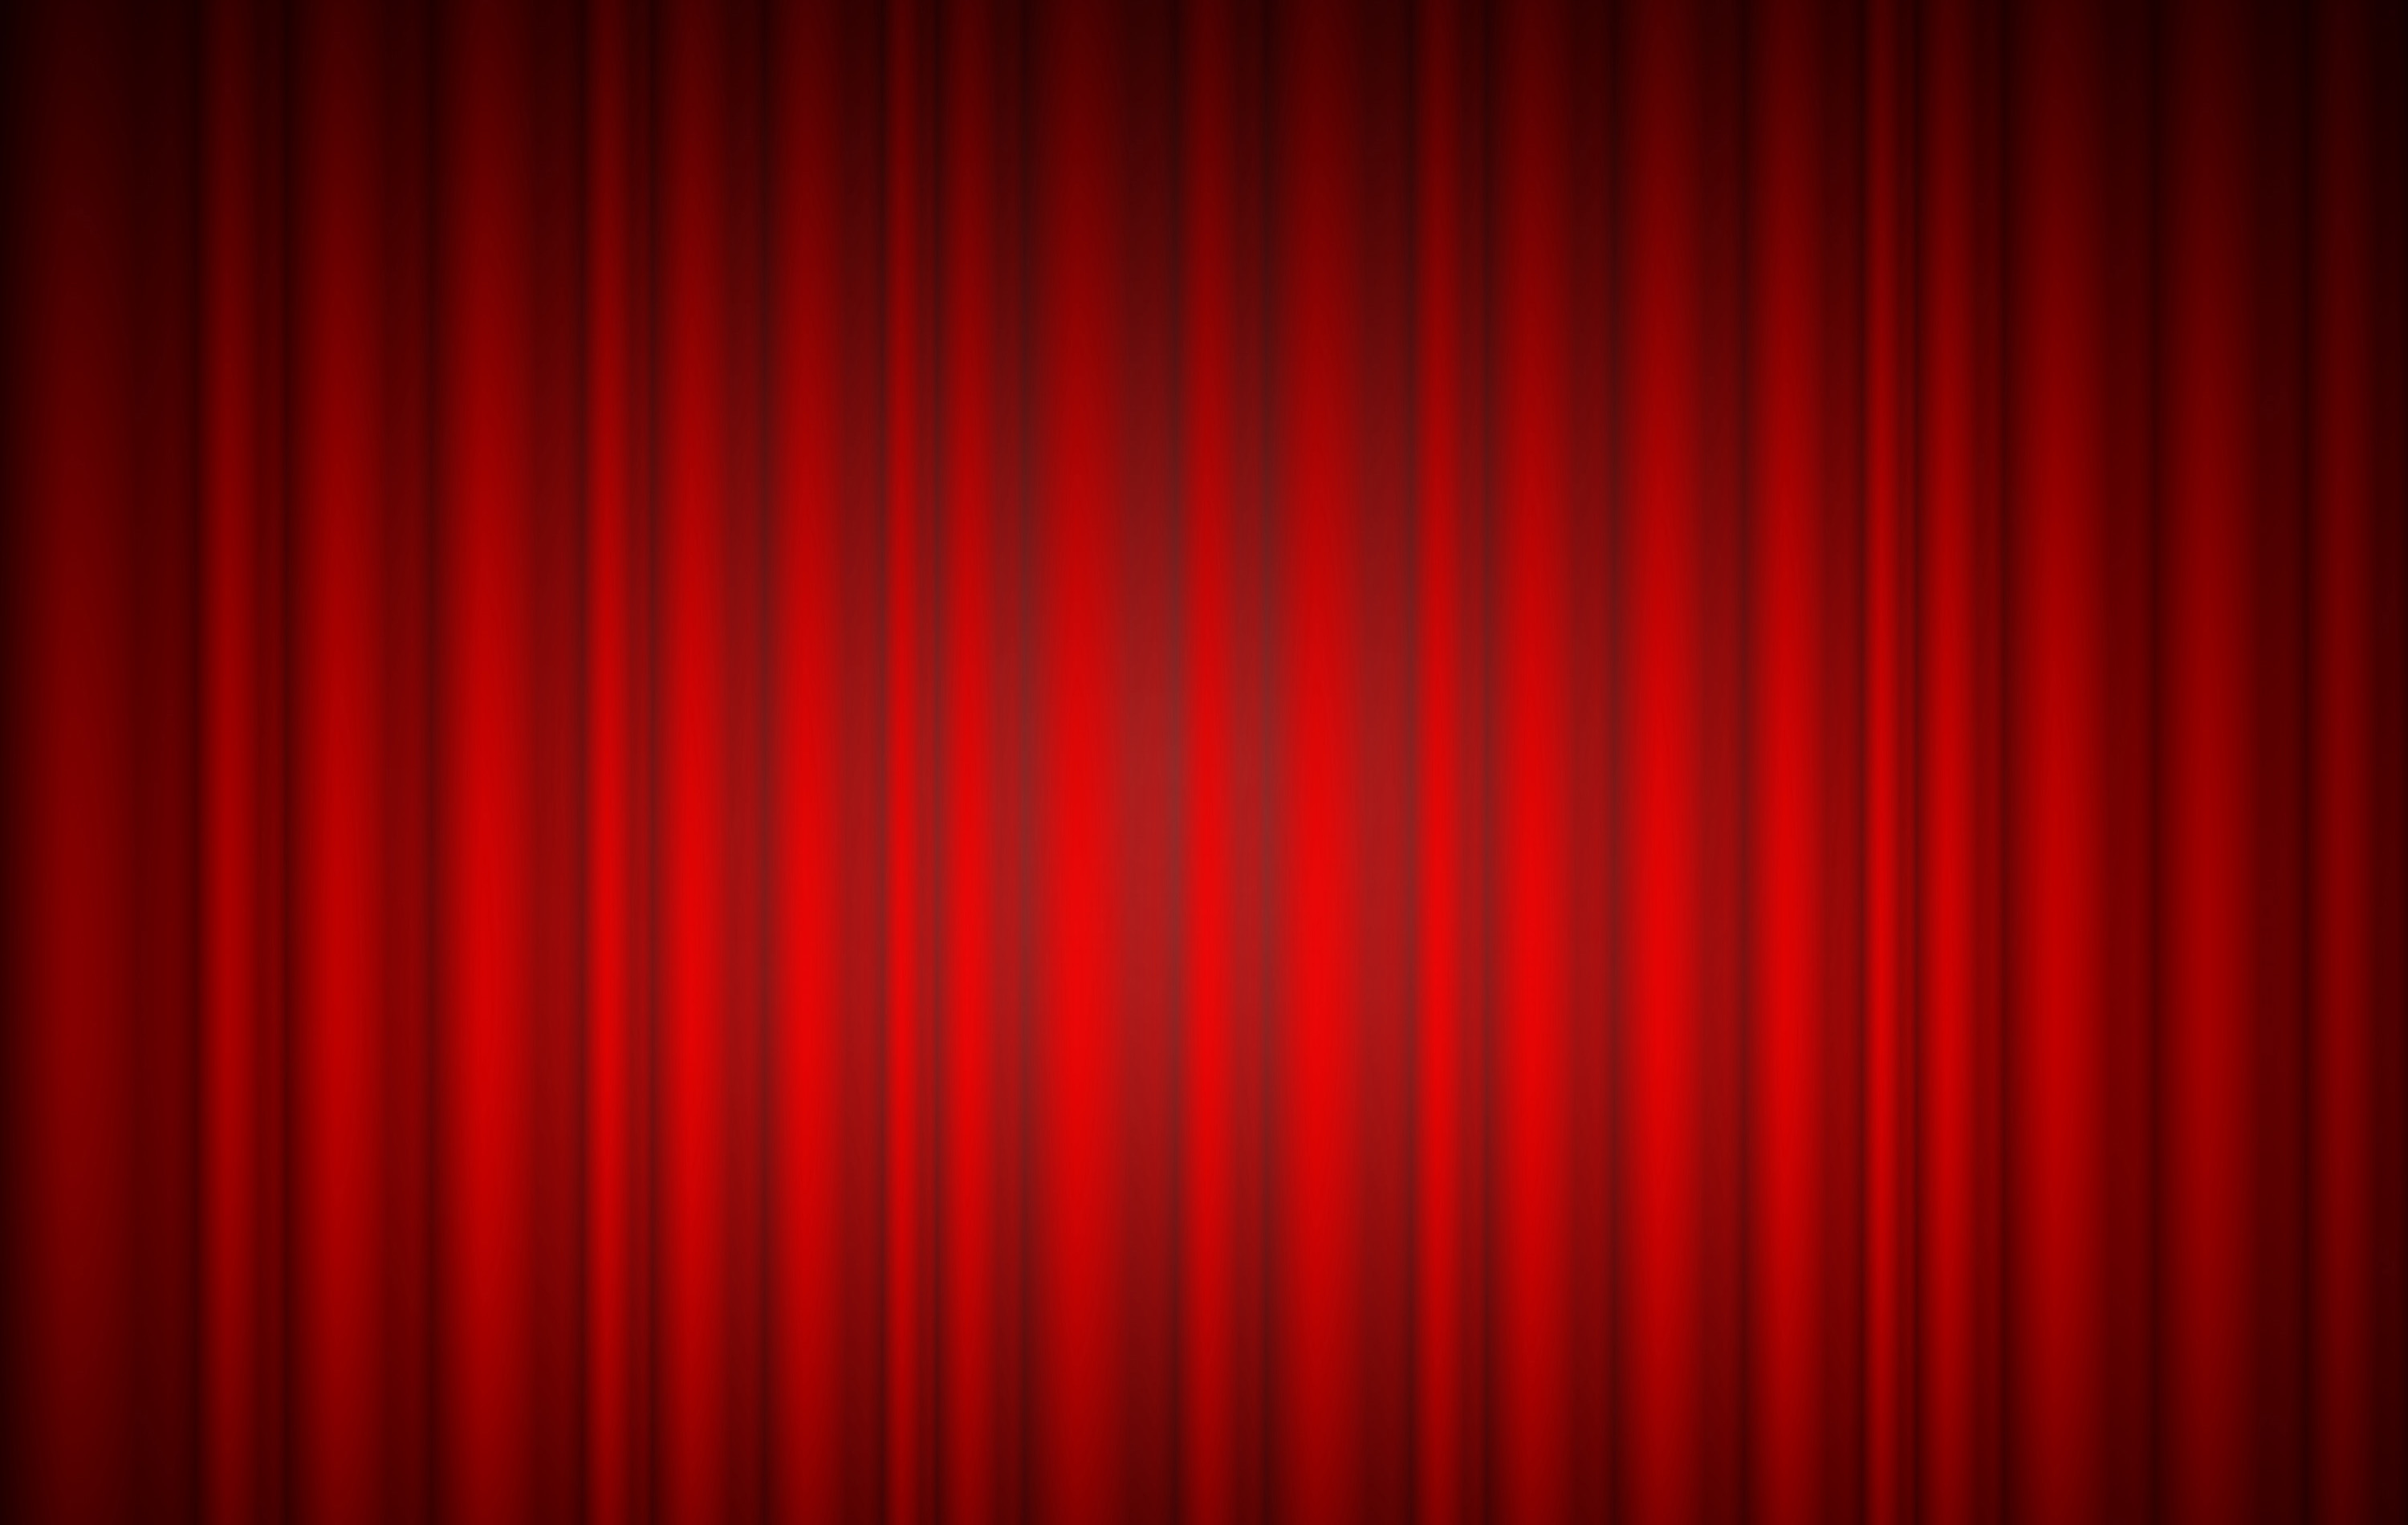 wallpapers red curtain background - photo #21